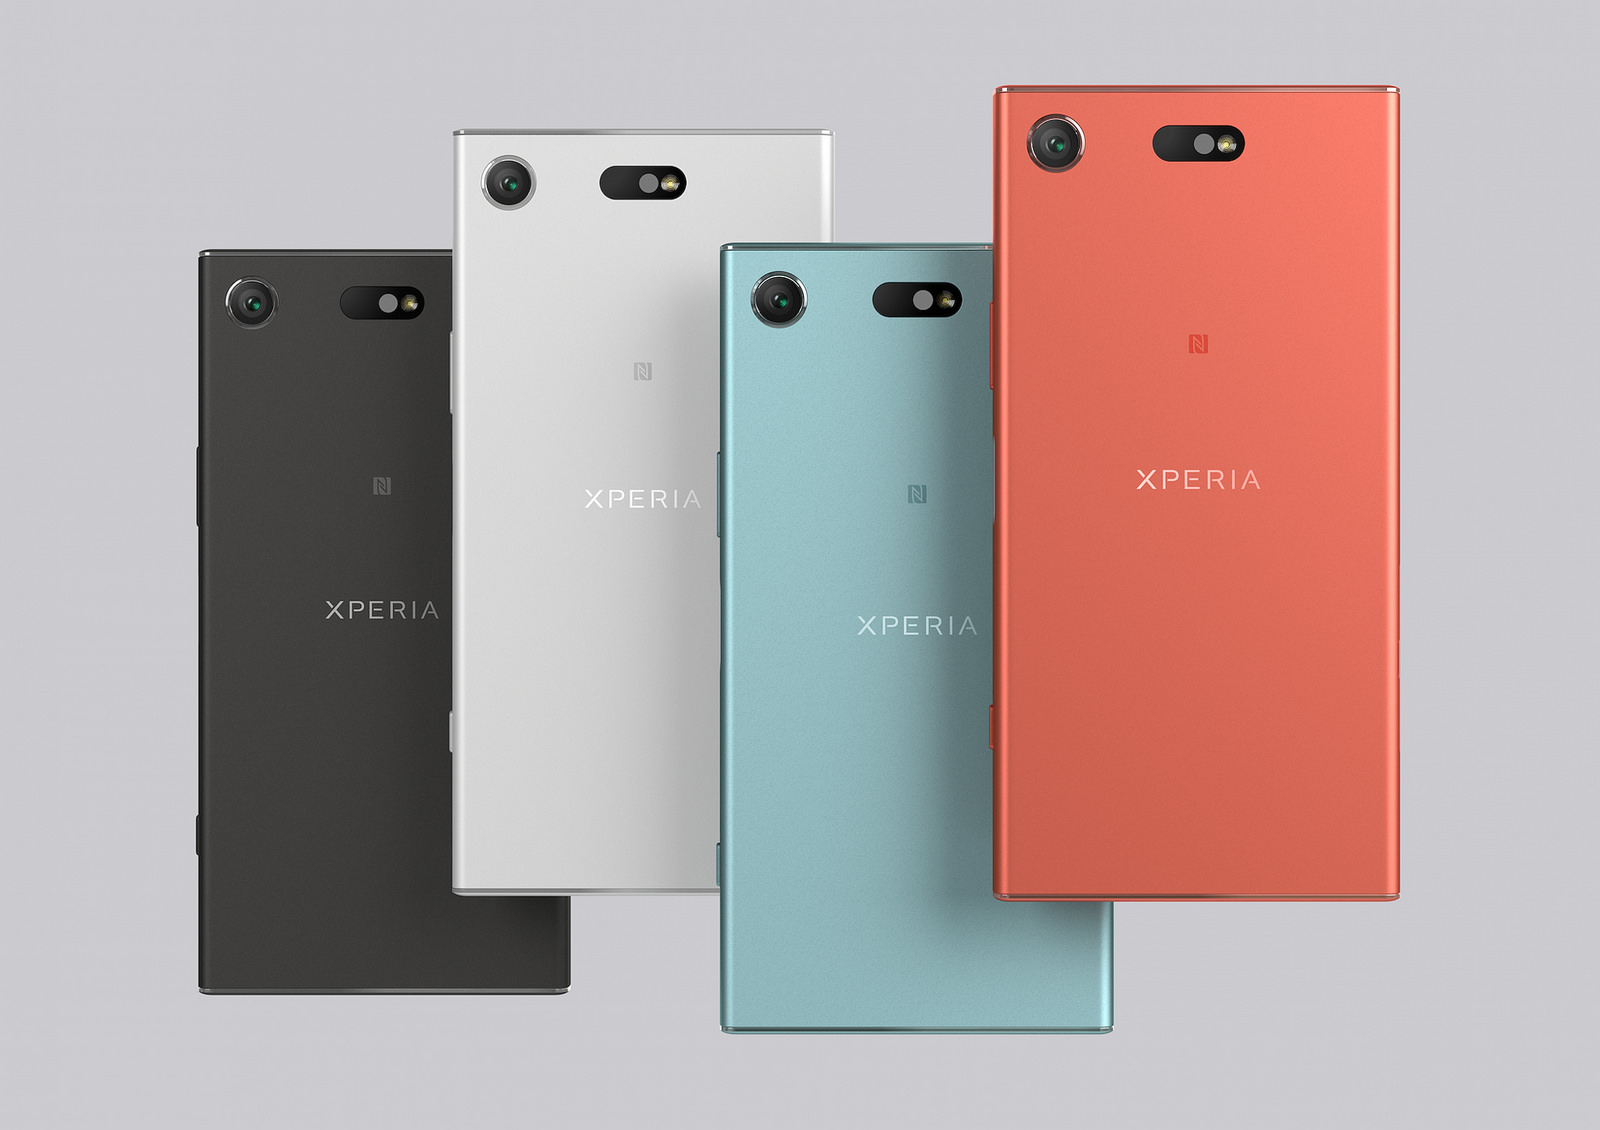 Sony Xperia XZ Premium users start receiving Android 8.0 Oreo update